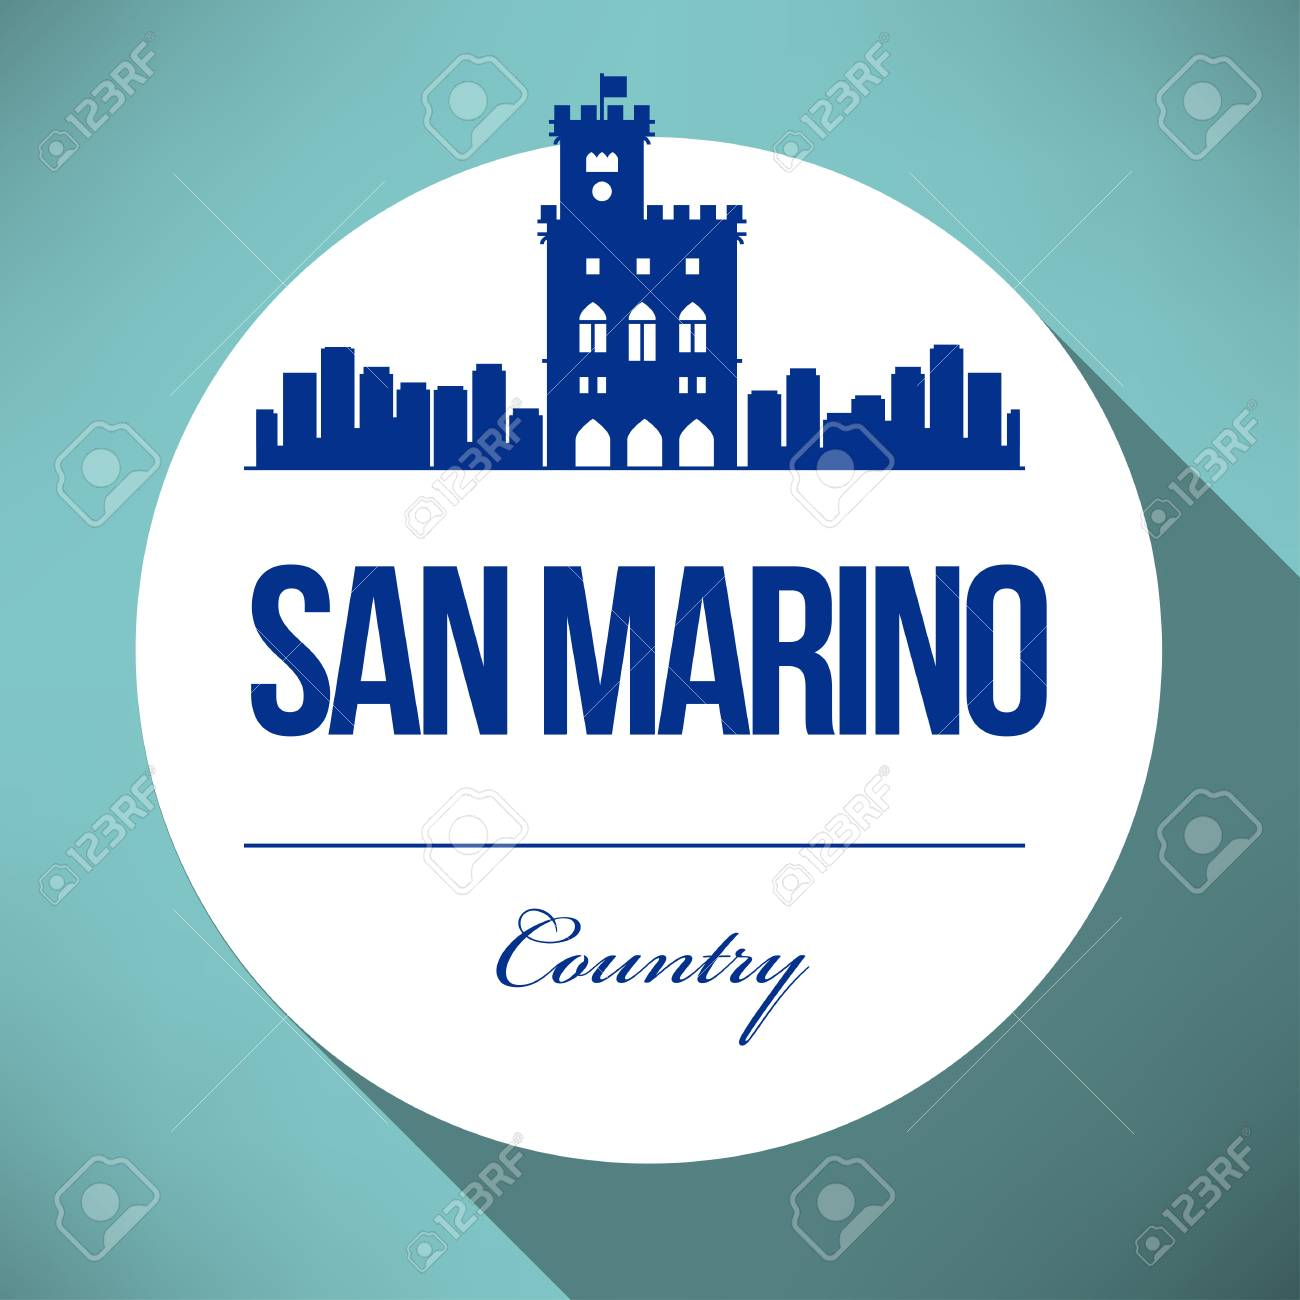 Vector Graphic Design Of San Marino City Skyline Royalty Free ...